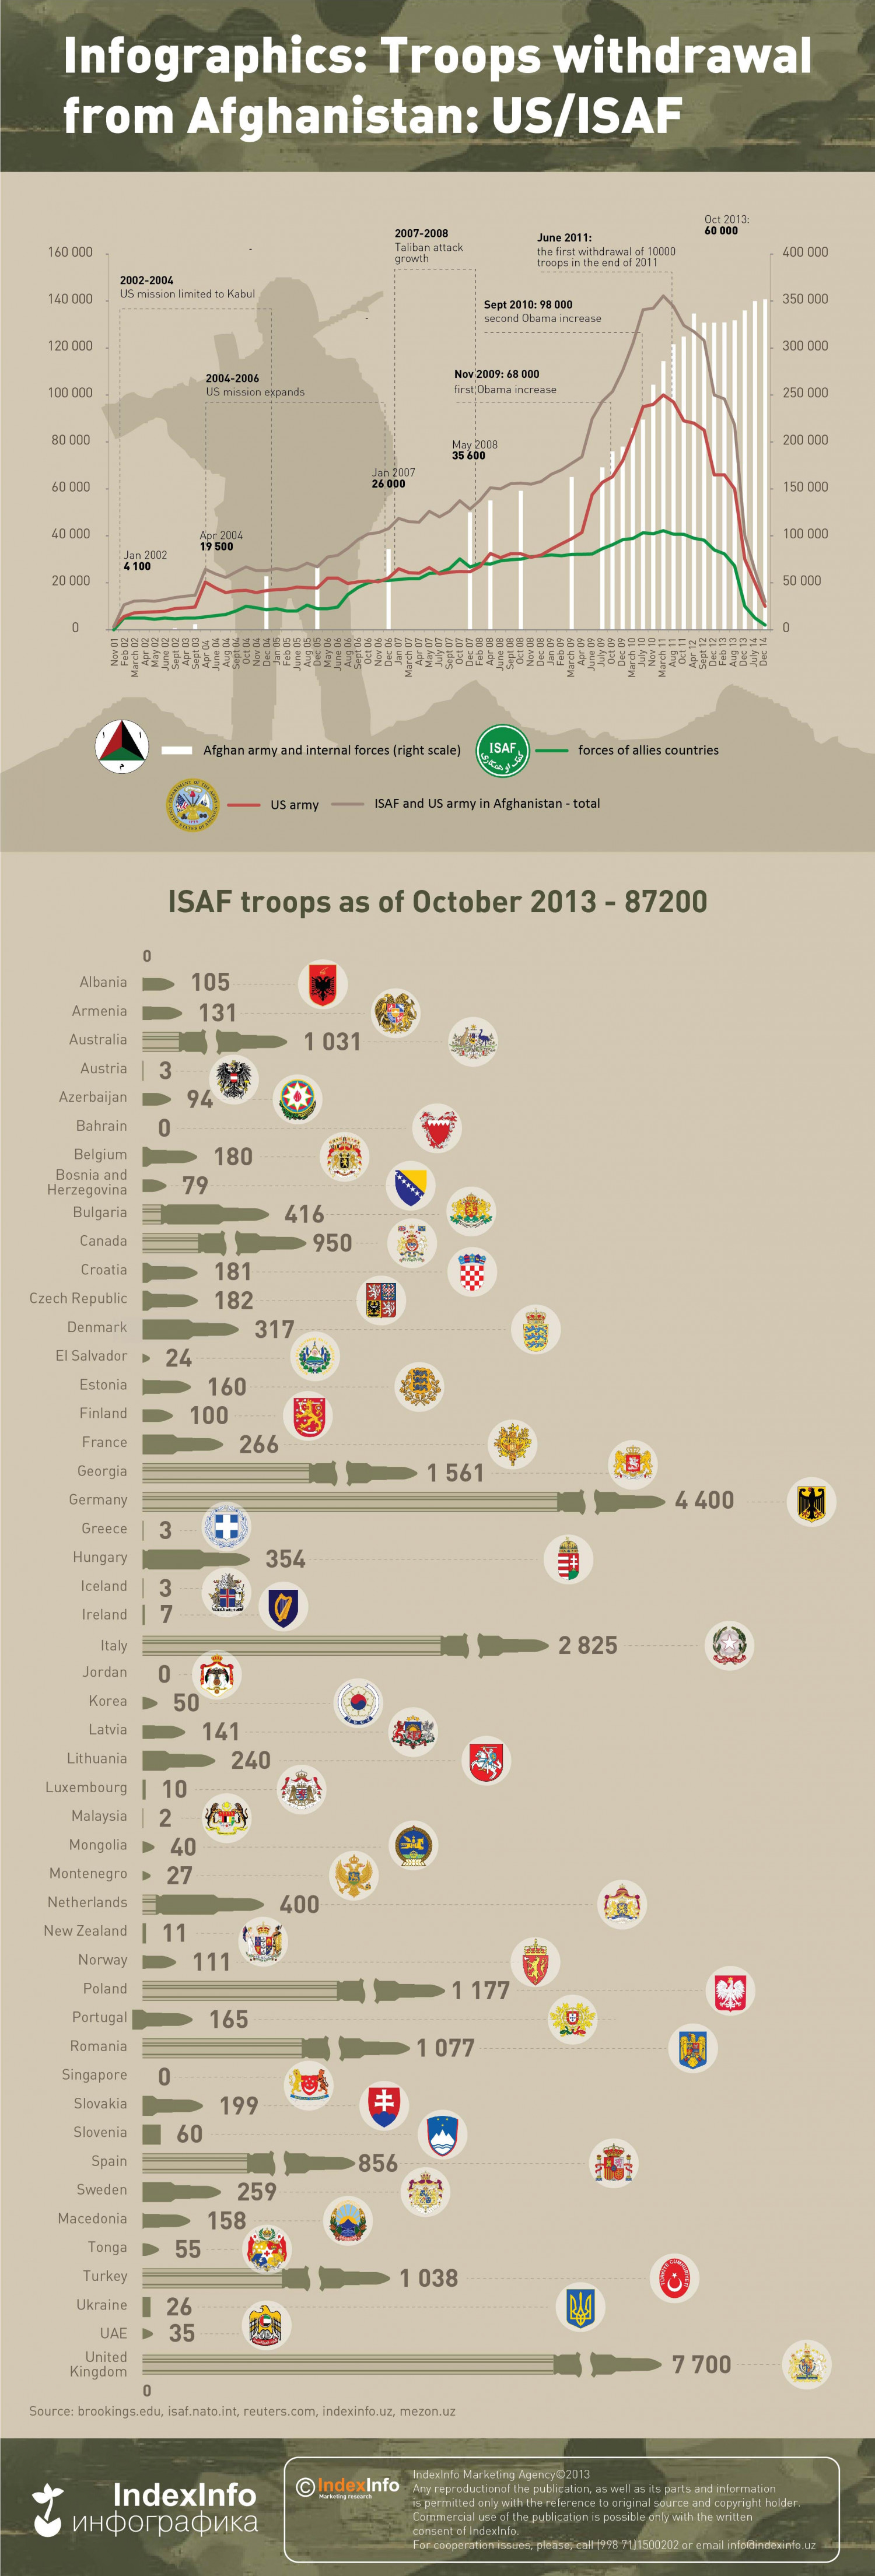 Troops withdrawal from Afghanistan: US/ISAF Infographic